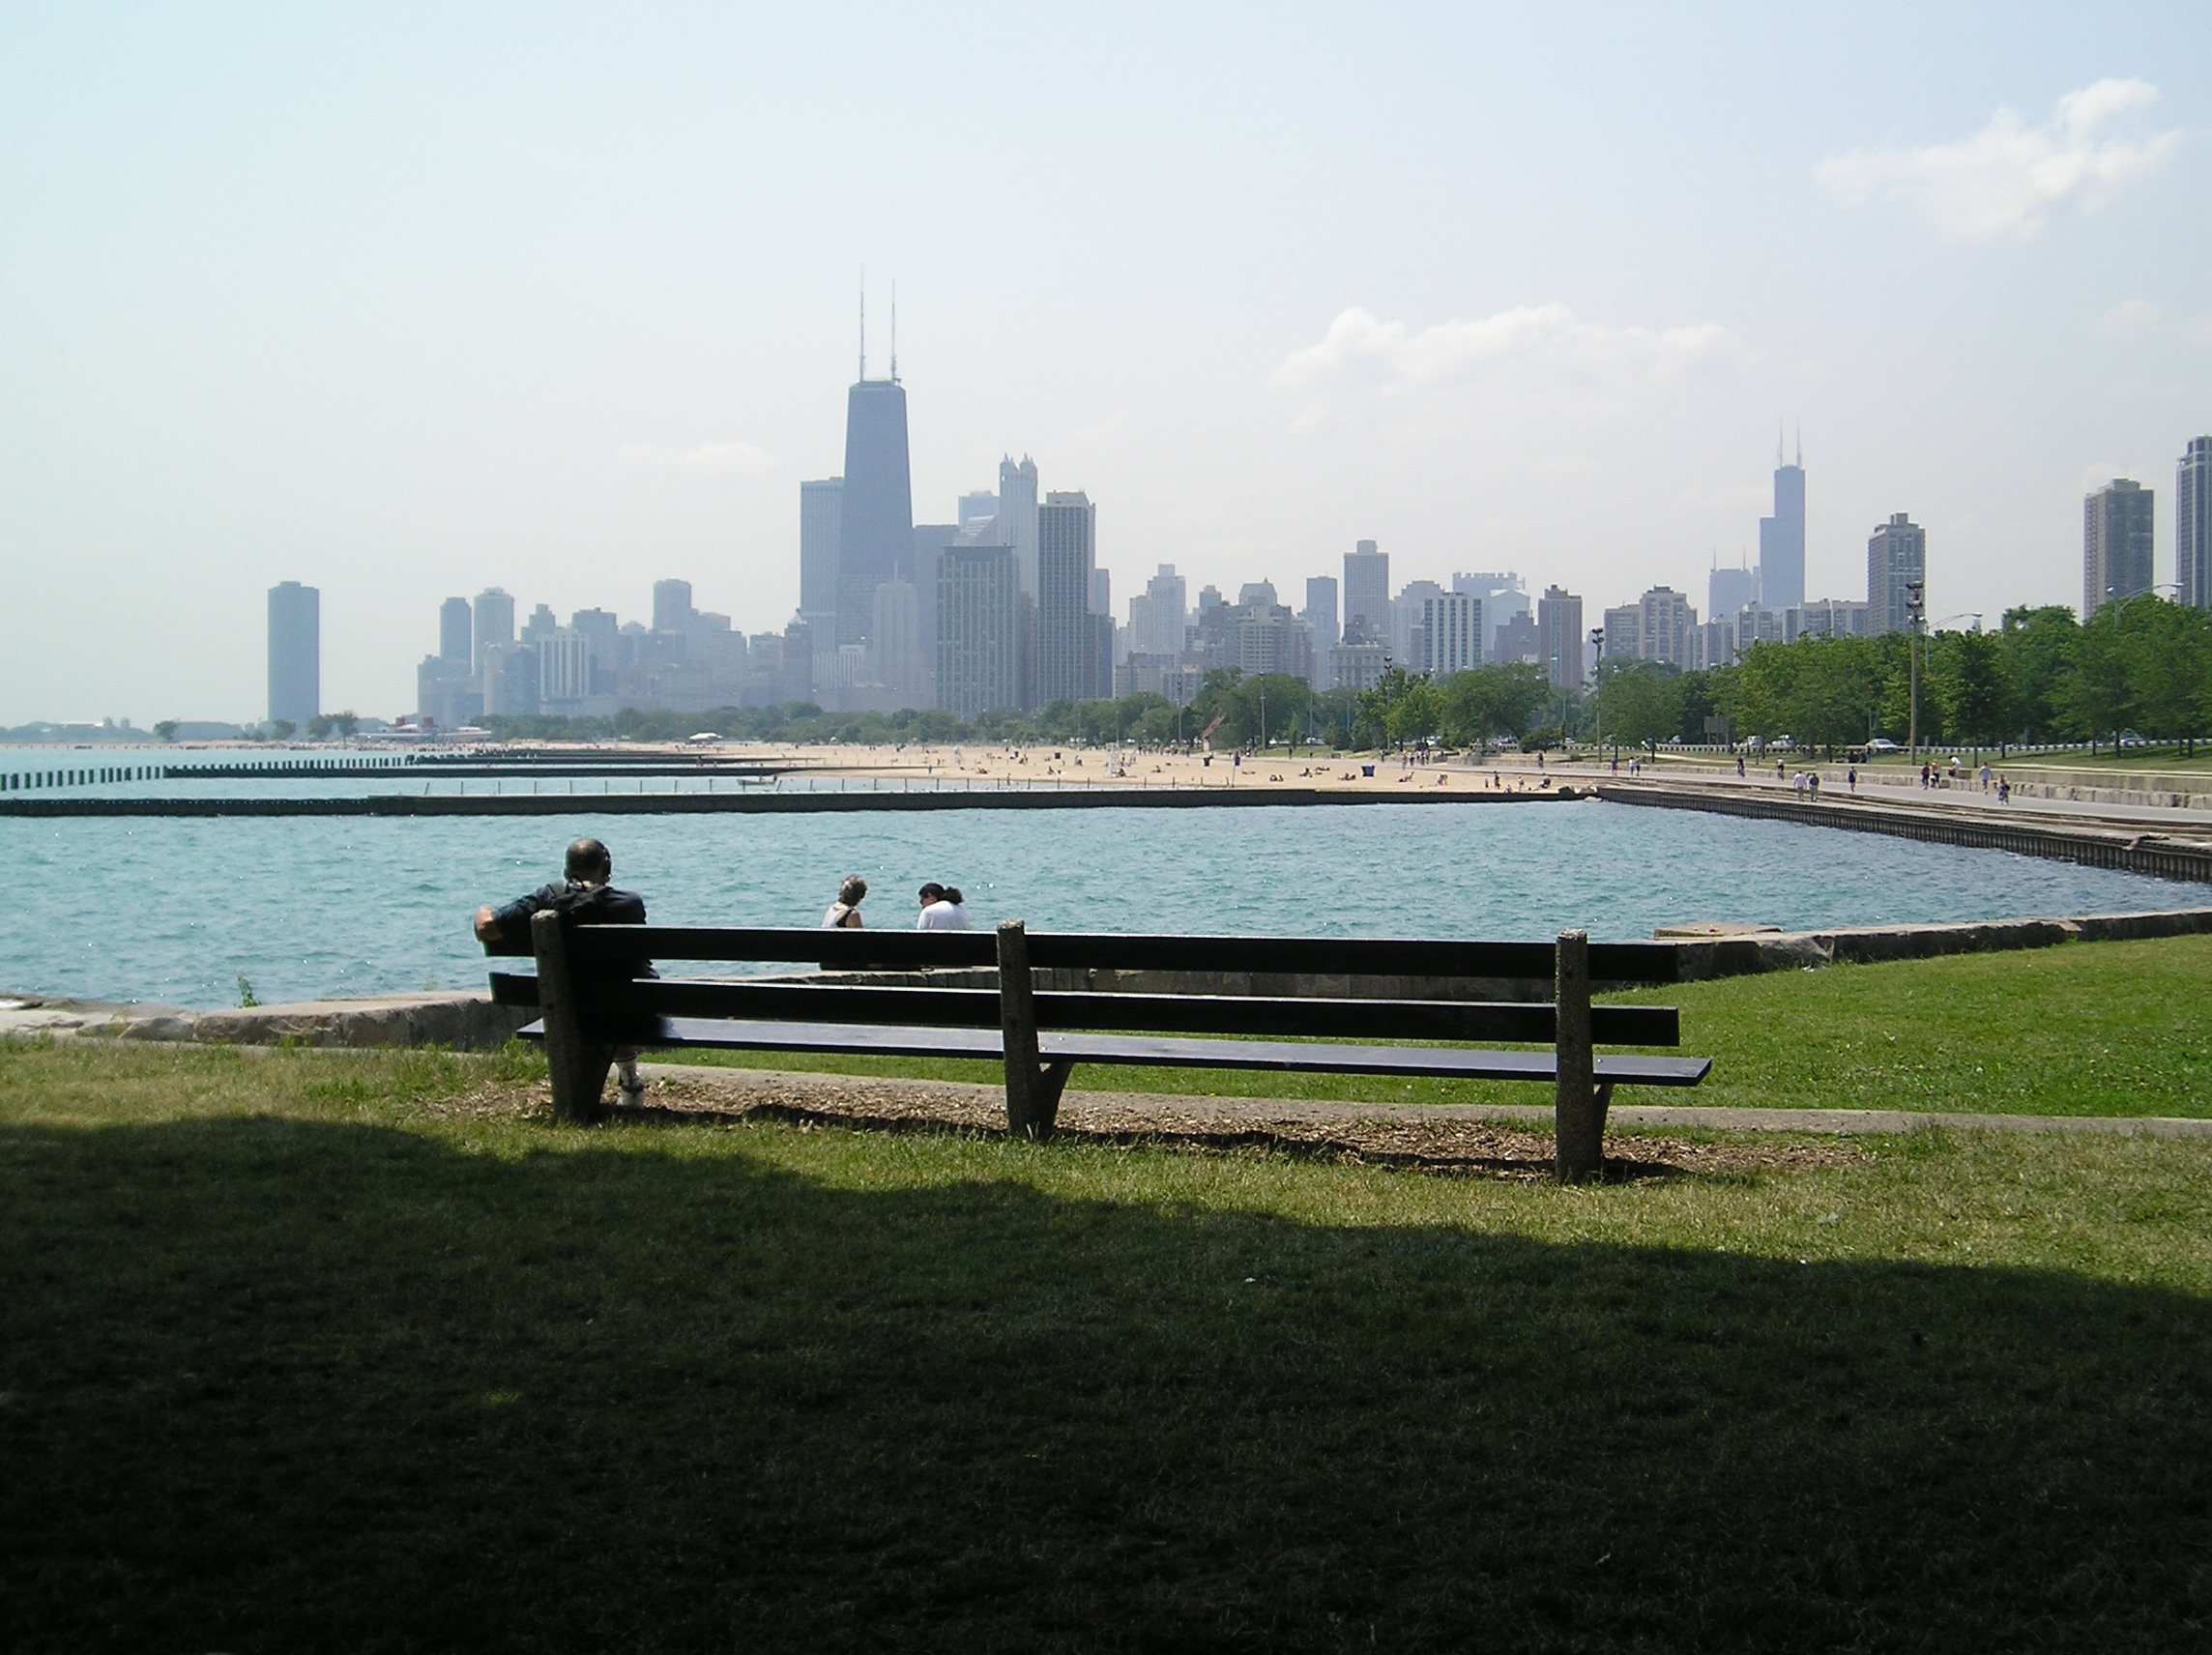 Preservationists want to turn Chicago's lakefront into a National Park